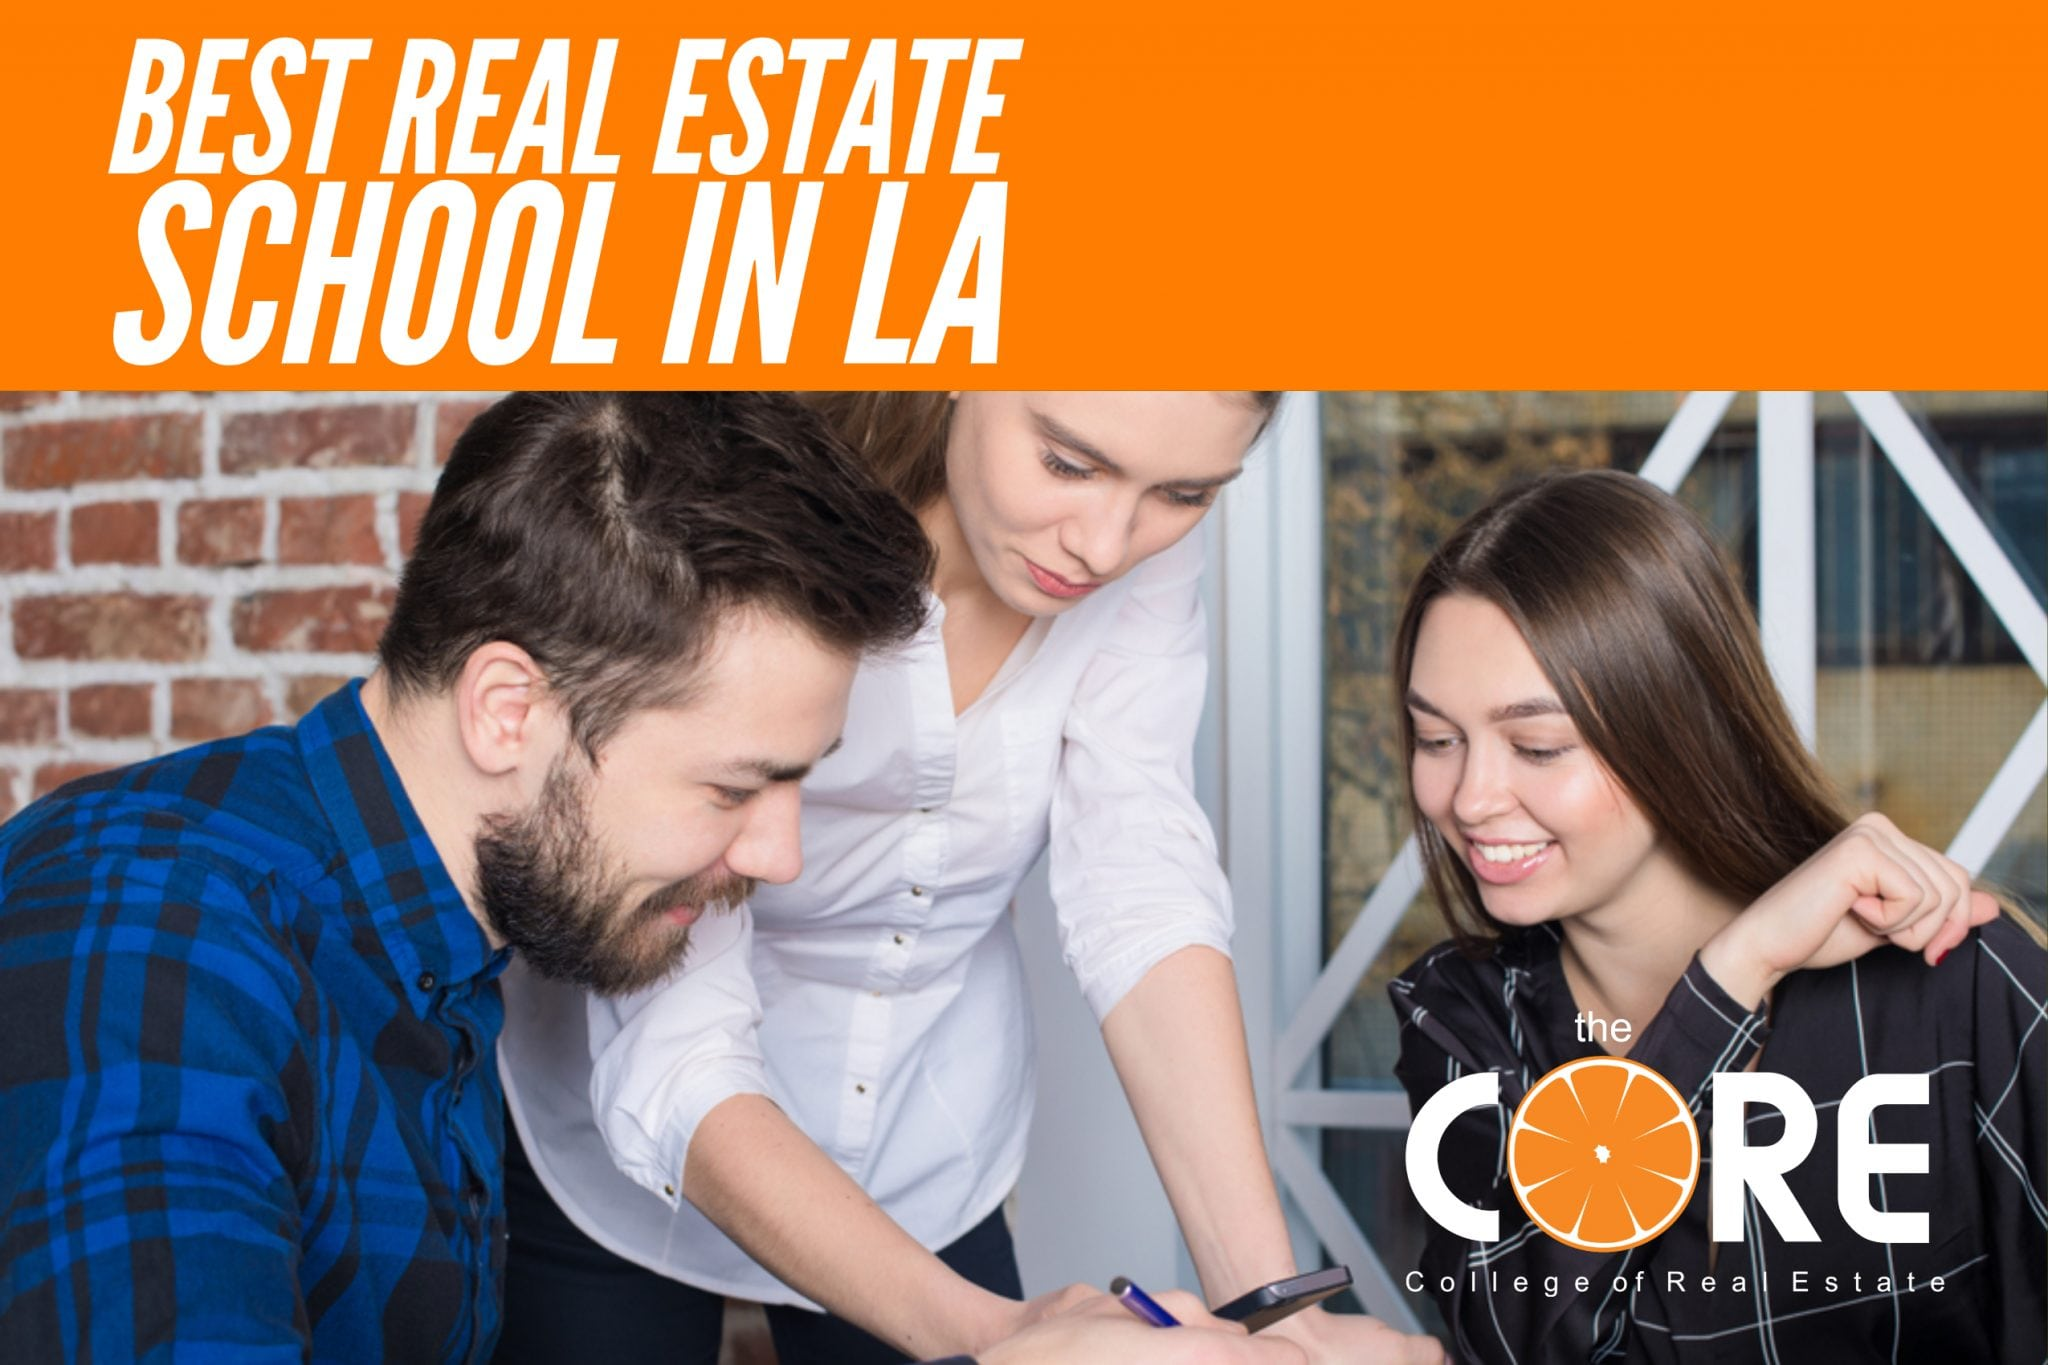 Get-Your-Real-Estate-License-Los-Angeles-Real-Estate-School-College-of-Real-Estate-theCORE-pasadena real estate agent pasadena real estate office pasadena real estate company best real estate company to work for los angeles which real estate company has the best training for new agents best pasadena realtor pasadena homes for sale pasadena real estate market